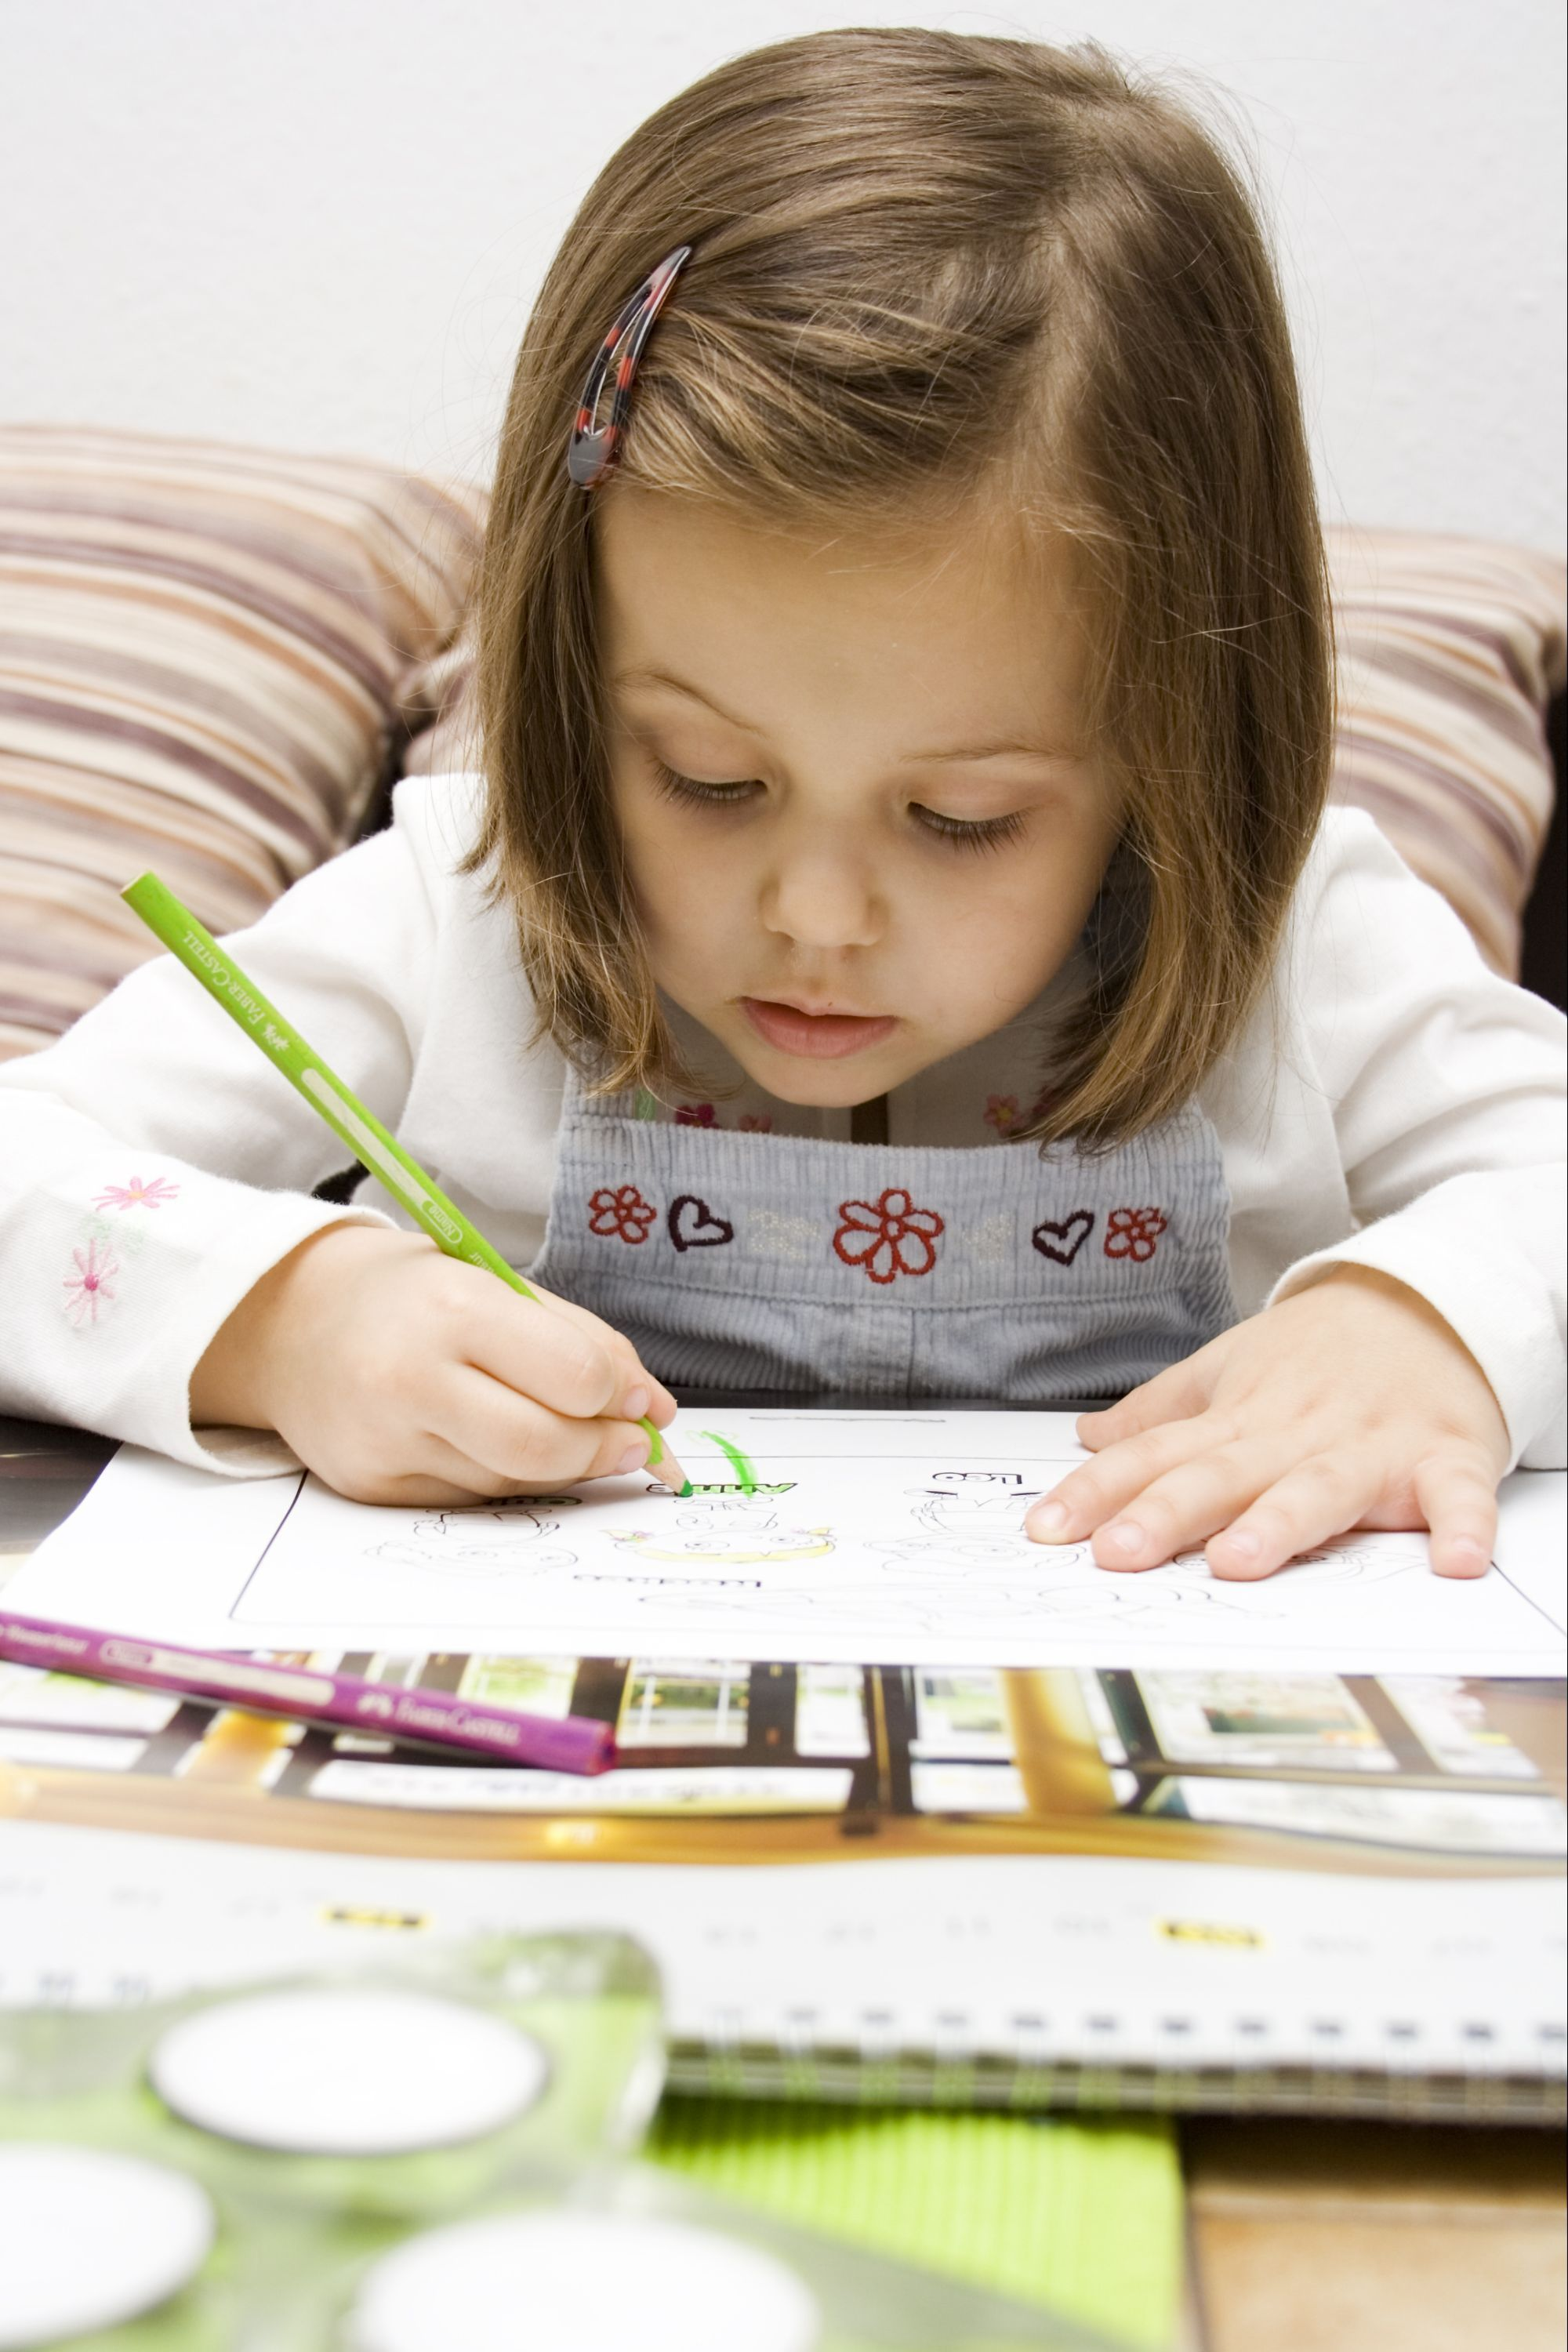 Motivating The Gifted Child